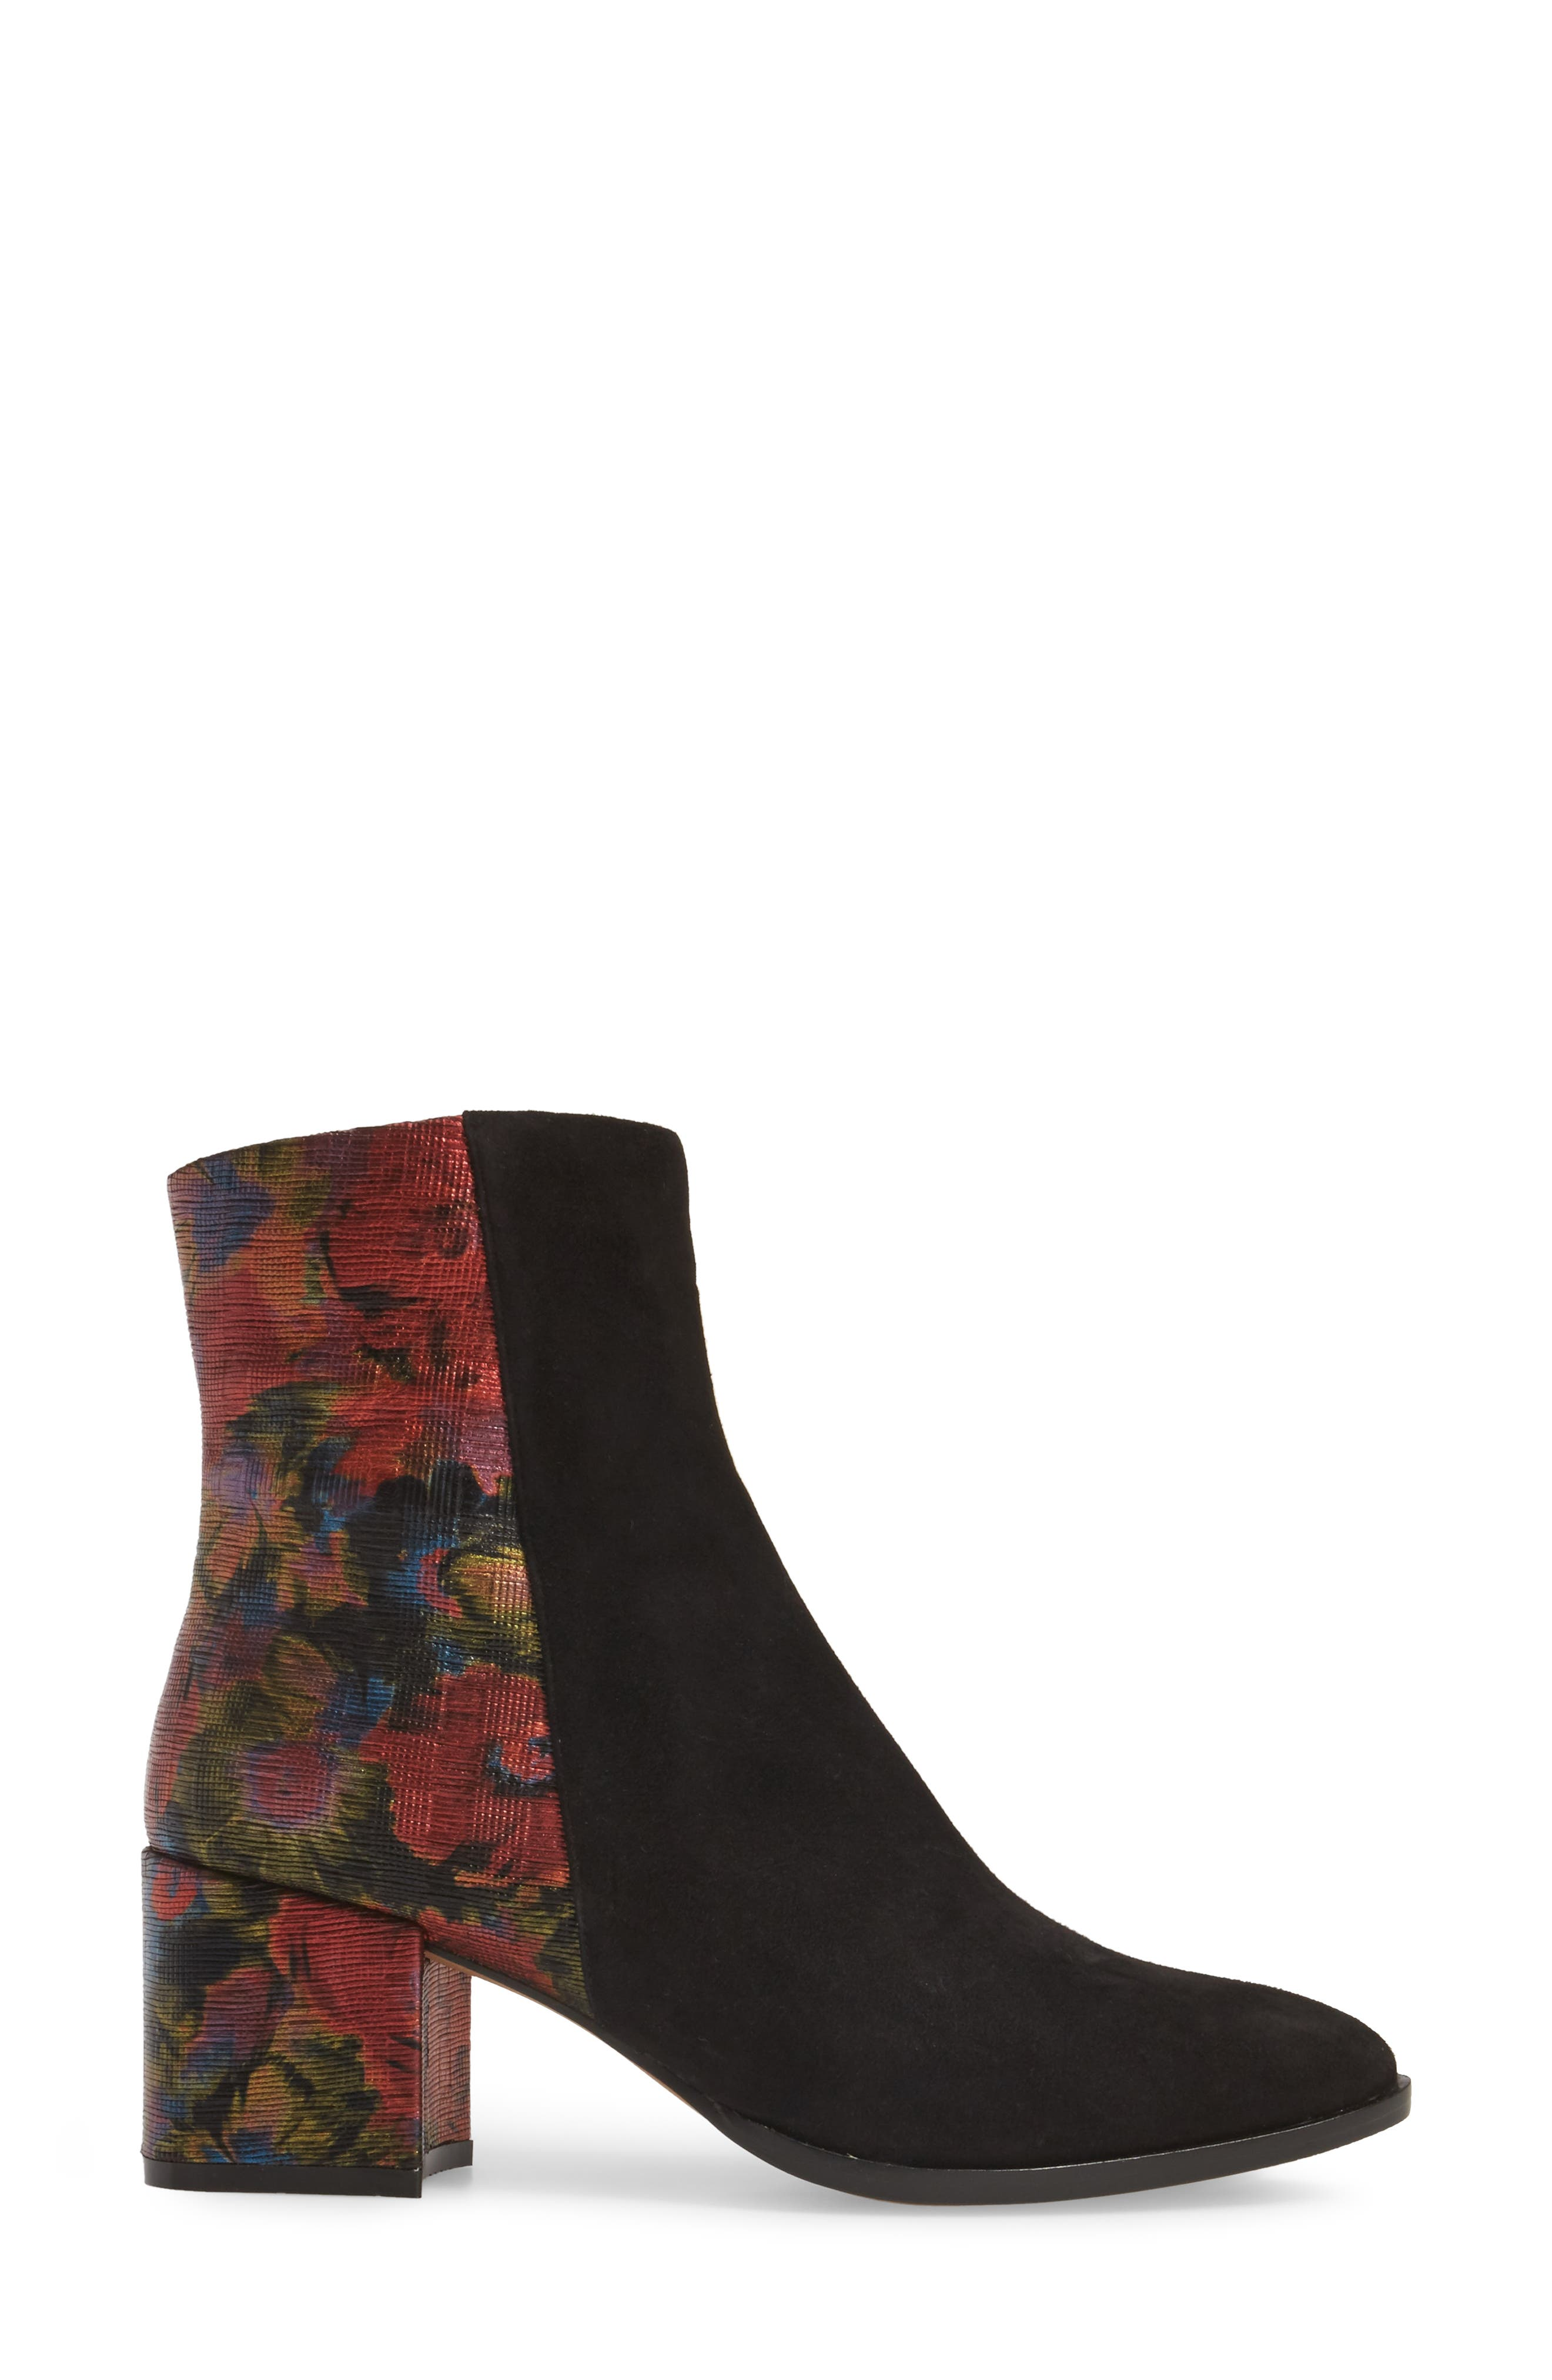 Brady Embellished Boot,                             Alternate thumbnail 3, color,                             Black/ Red Suede